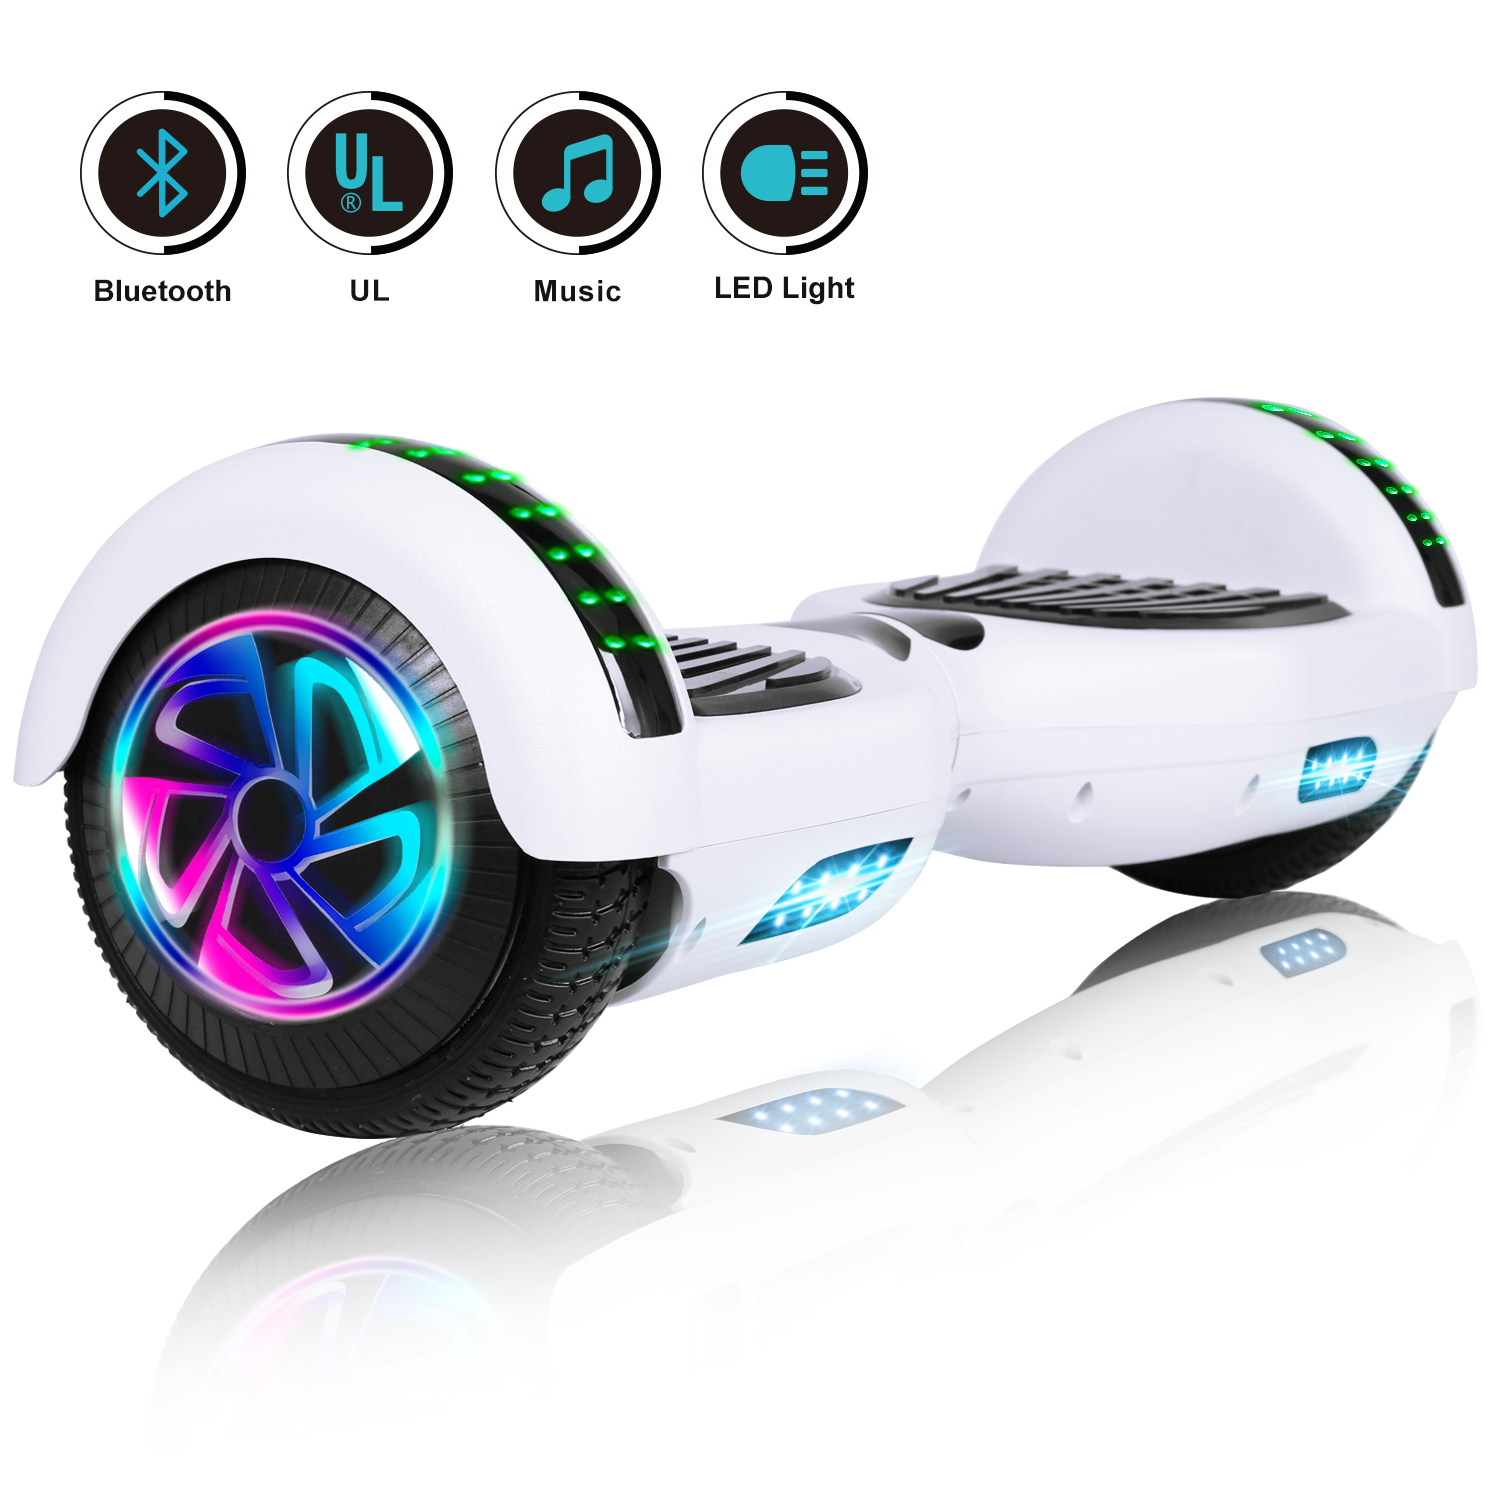 6-5-034-Bluetooth-Hoverboard-LED-Self-Balancing-Scooter-UL2272-no-Bag-US-Best-Gift thumbnail 2